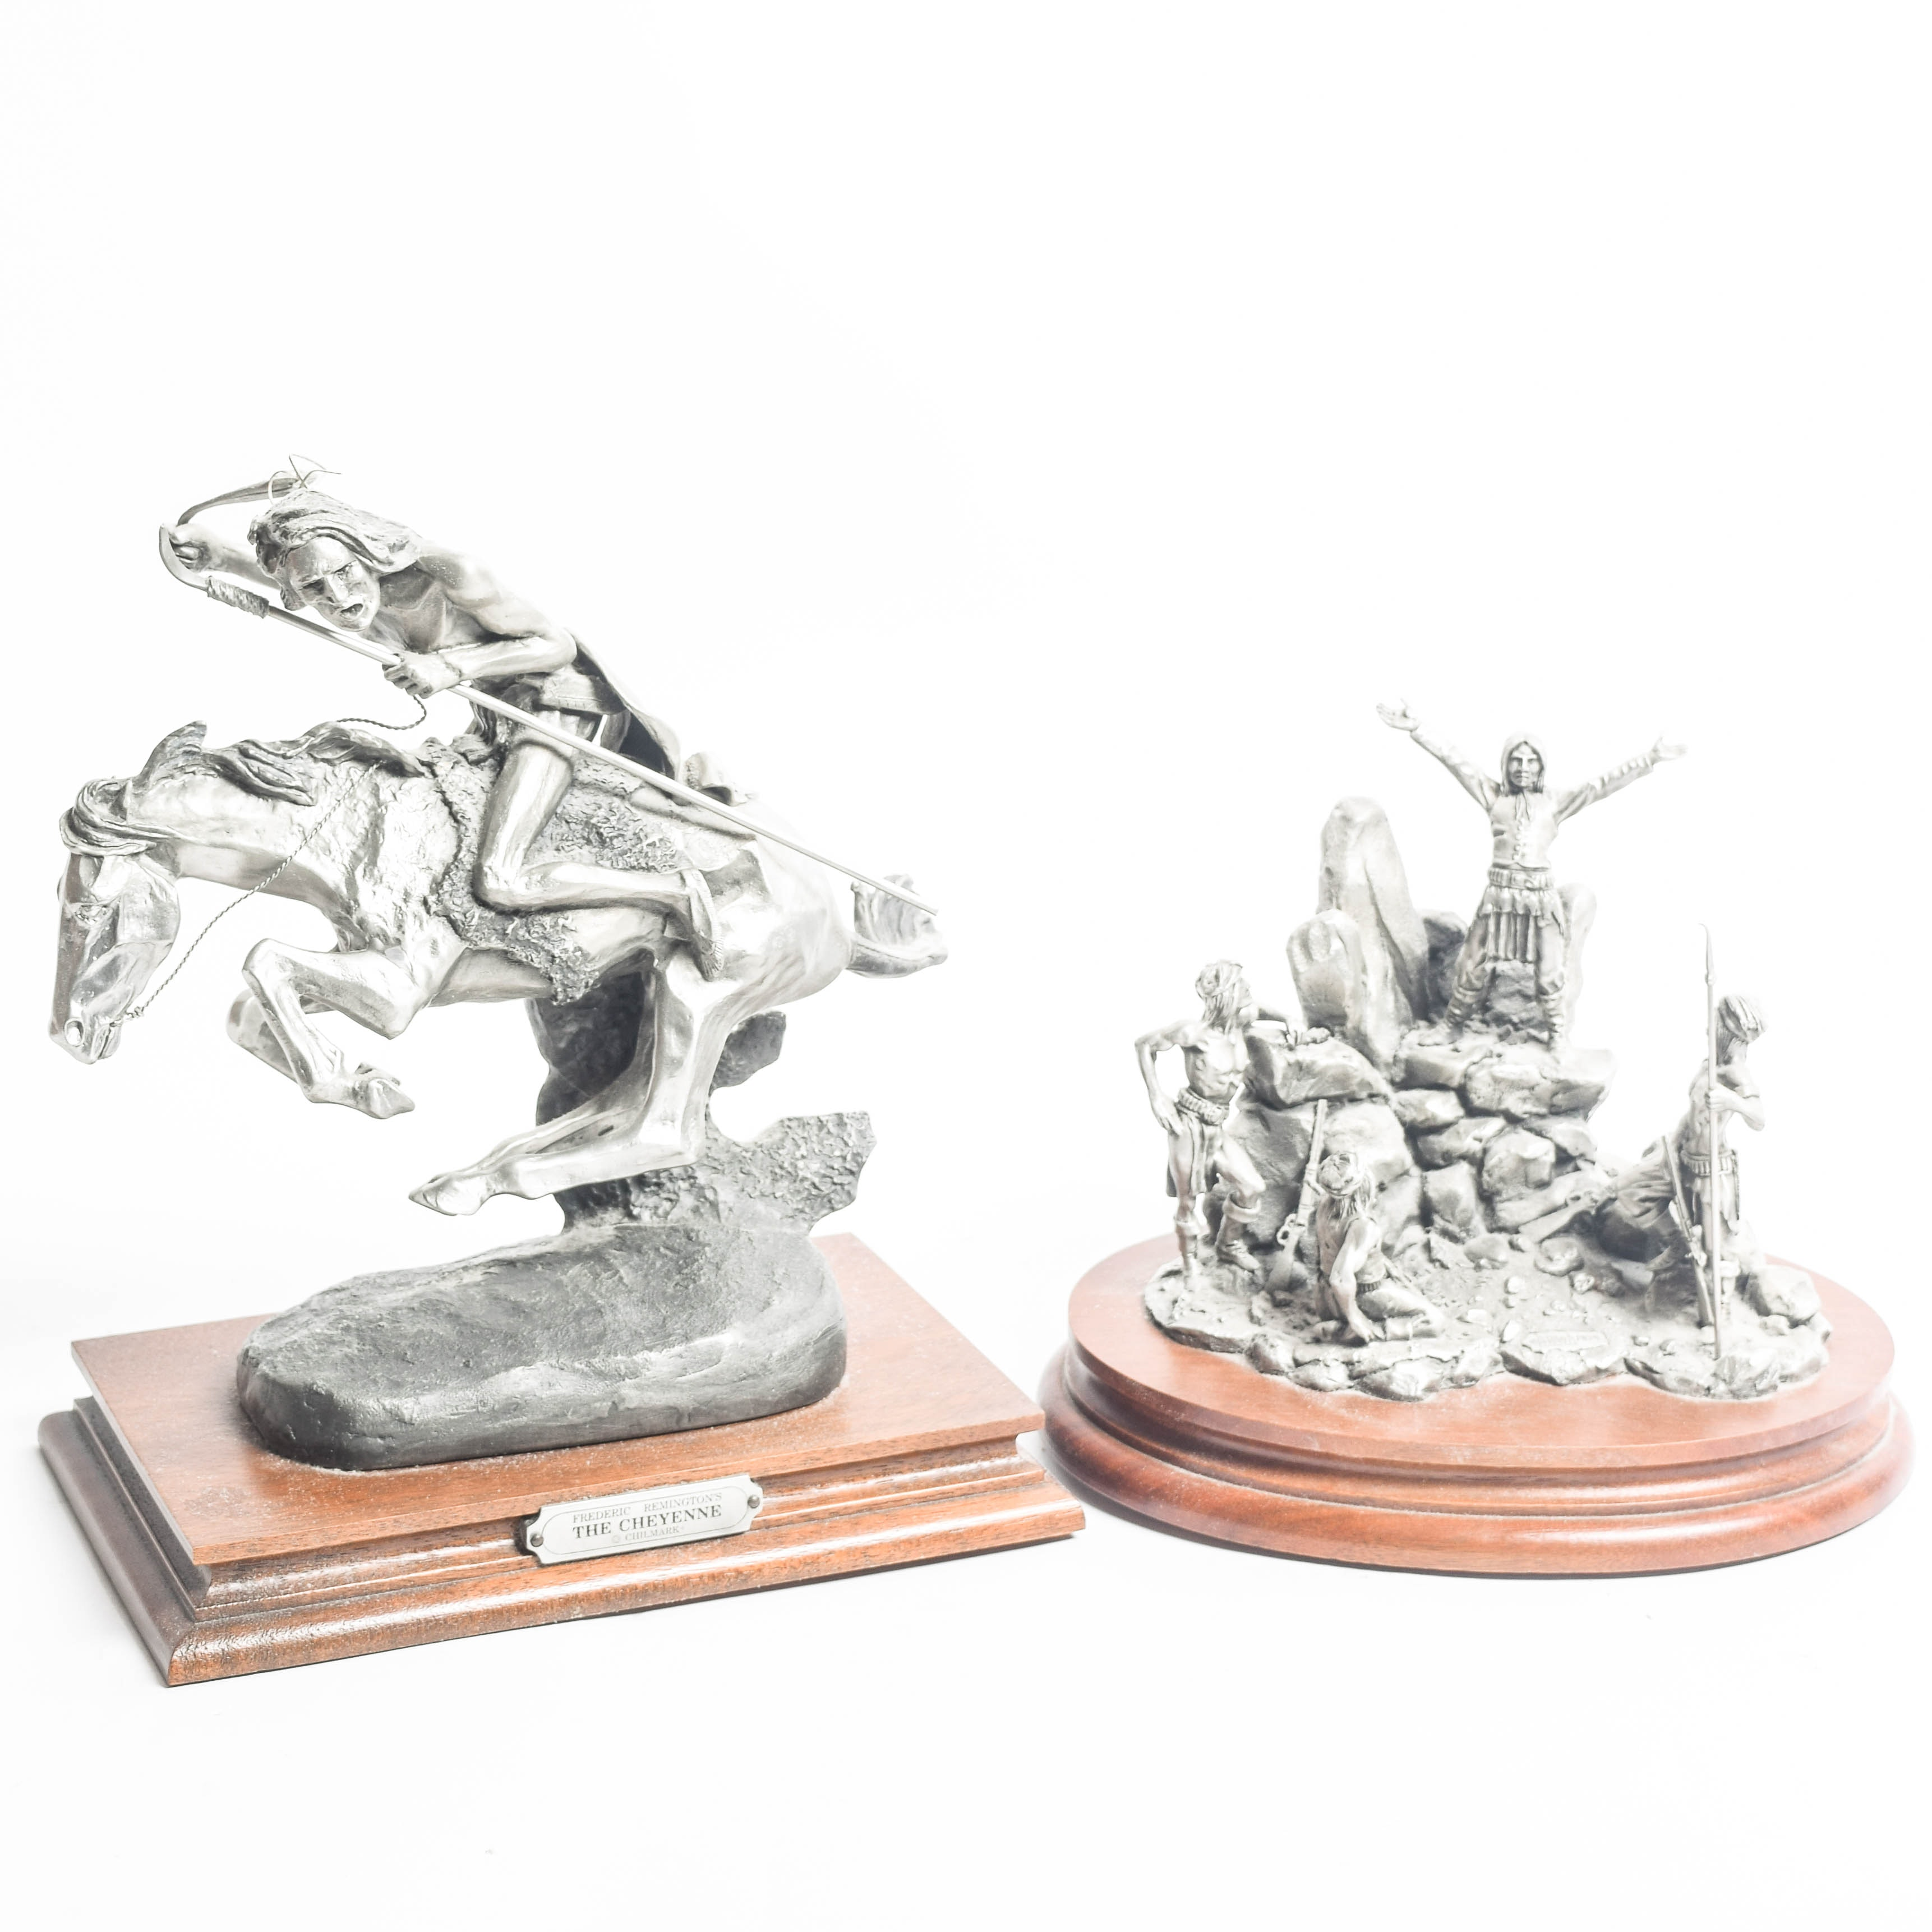 Pair of Limited Edition Polland and Remington Reproduction Pewter Sculptures